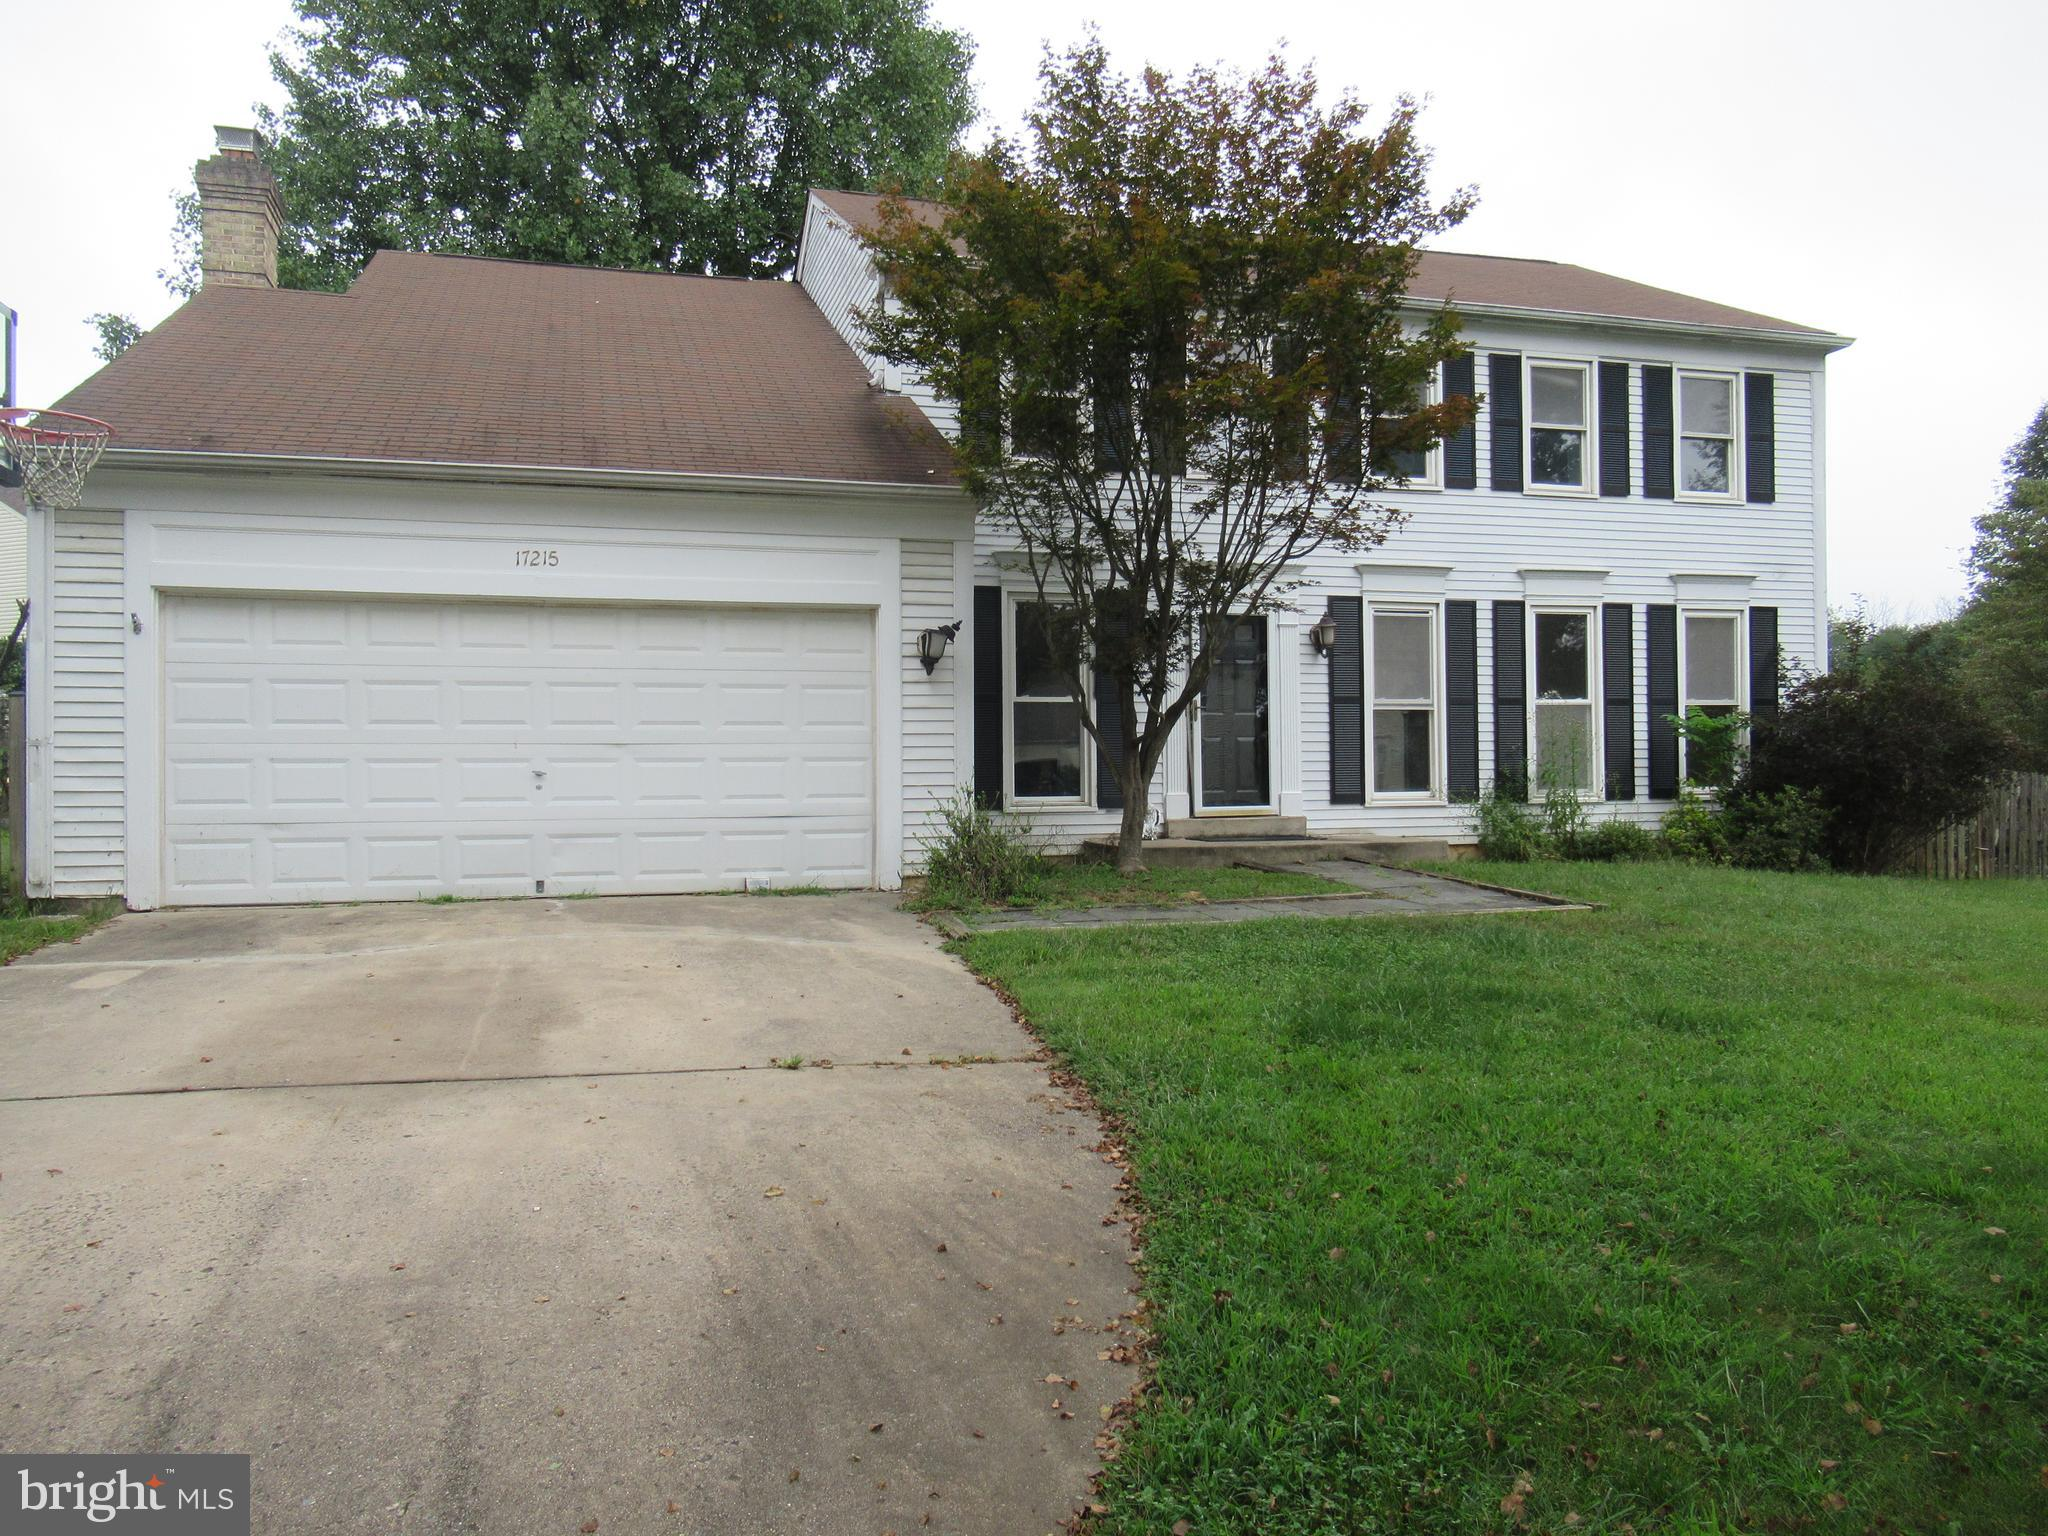 17215 Sandy Knoll Dr, Olney, MD, 20832